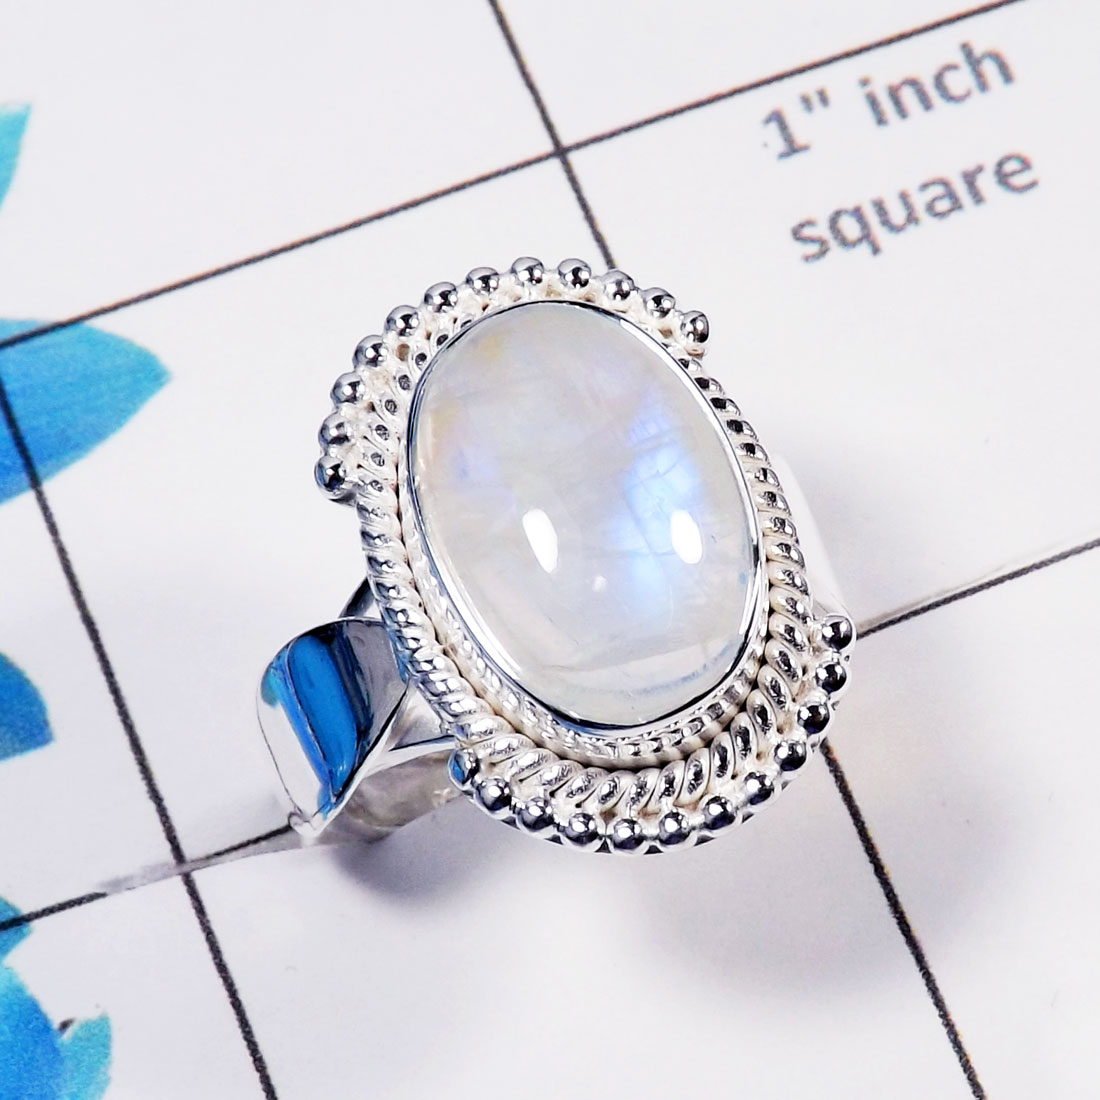 Rainbow Moonstone Cab A - RSS786-Genuine Rainbow Moonstone Direct Factory Made 925 Sterling Silver Designer Ring